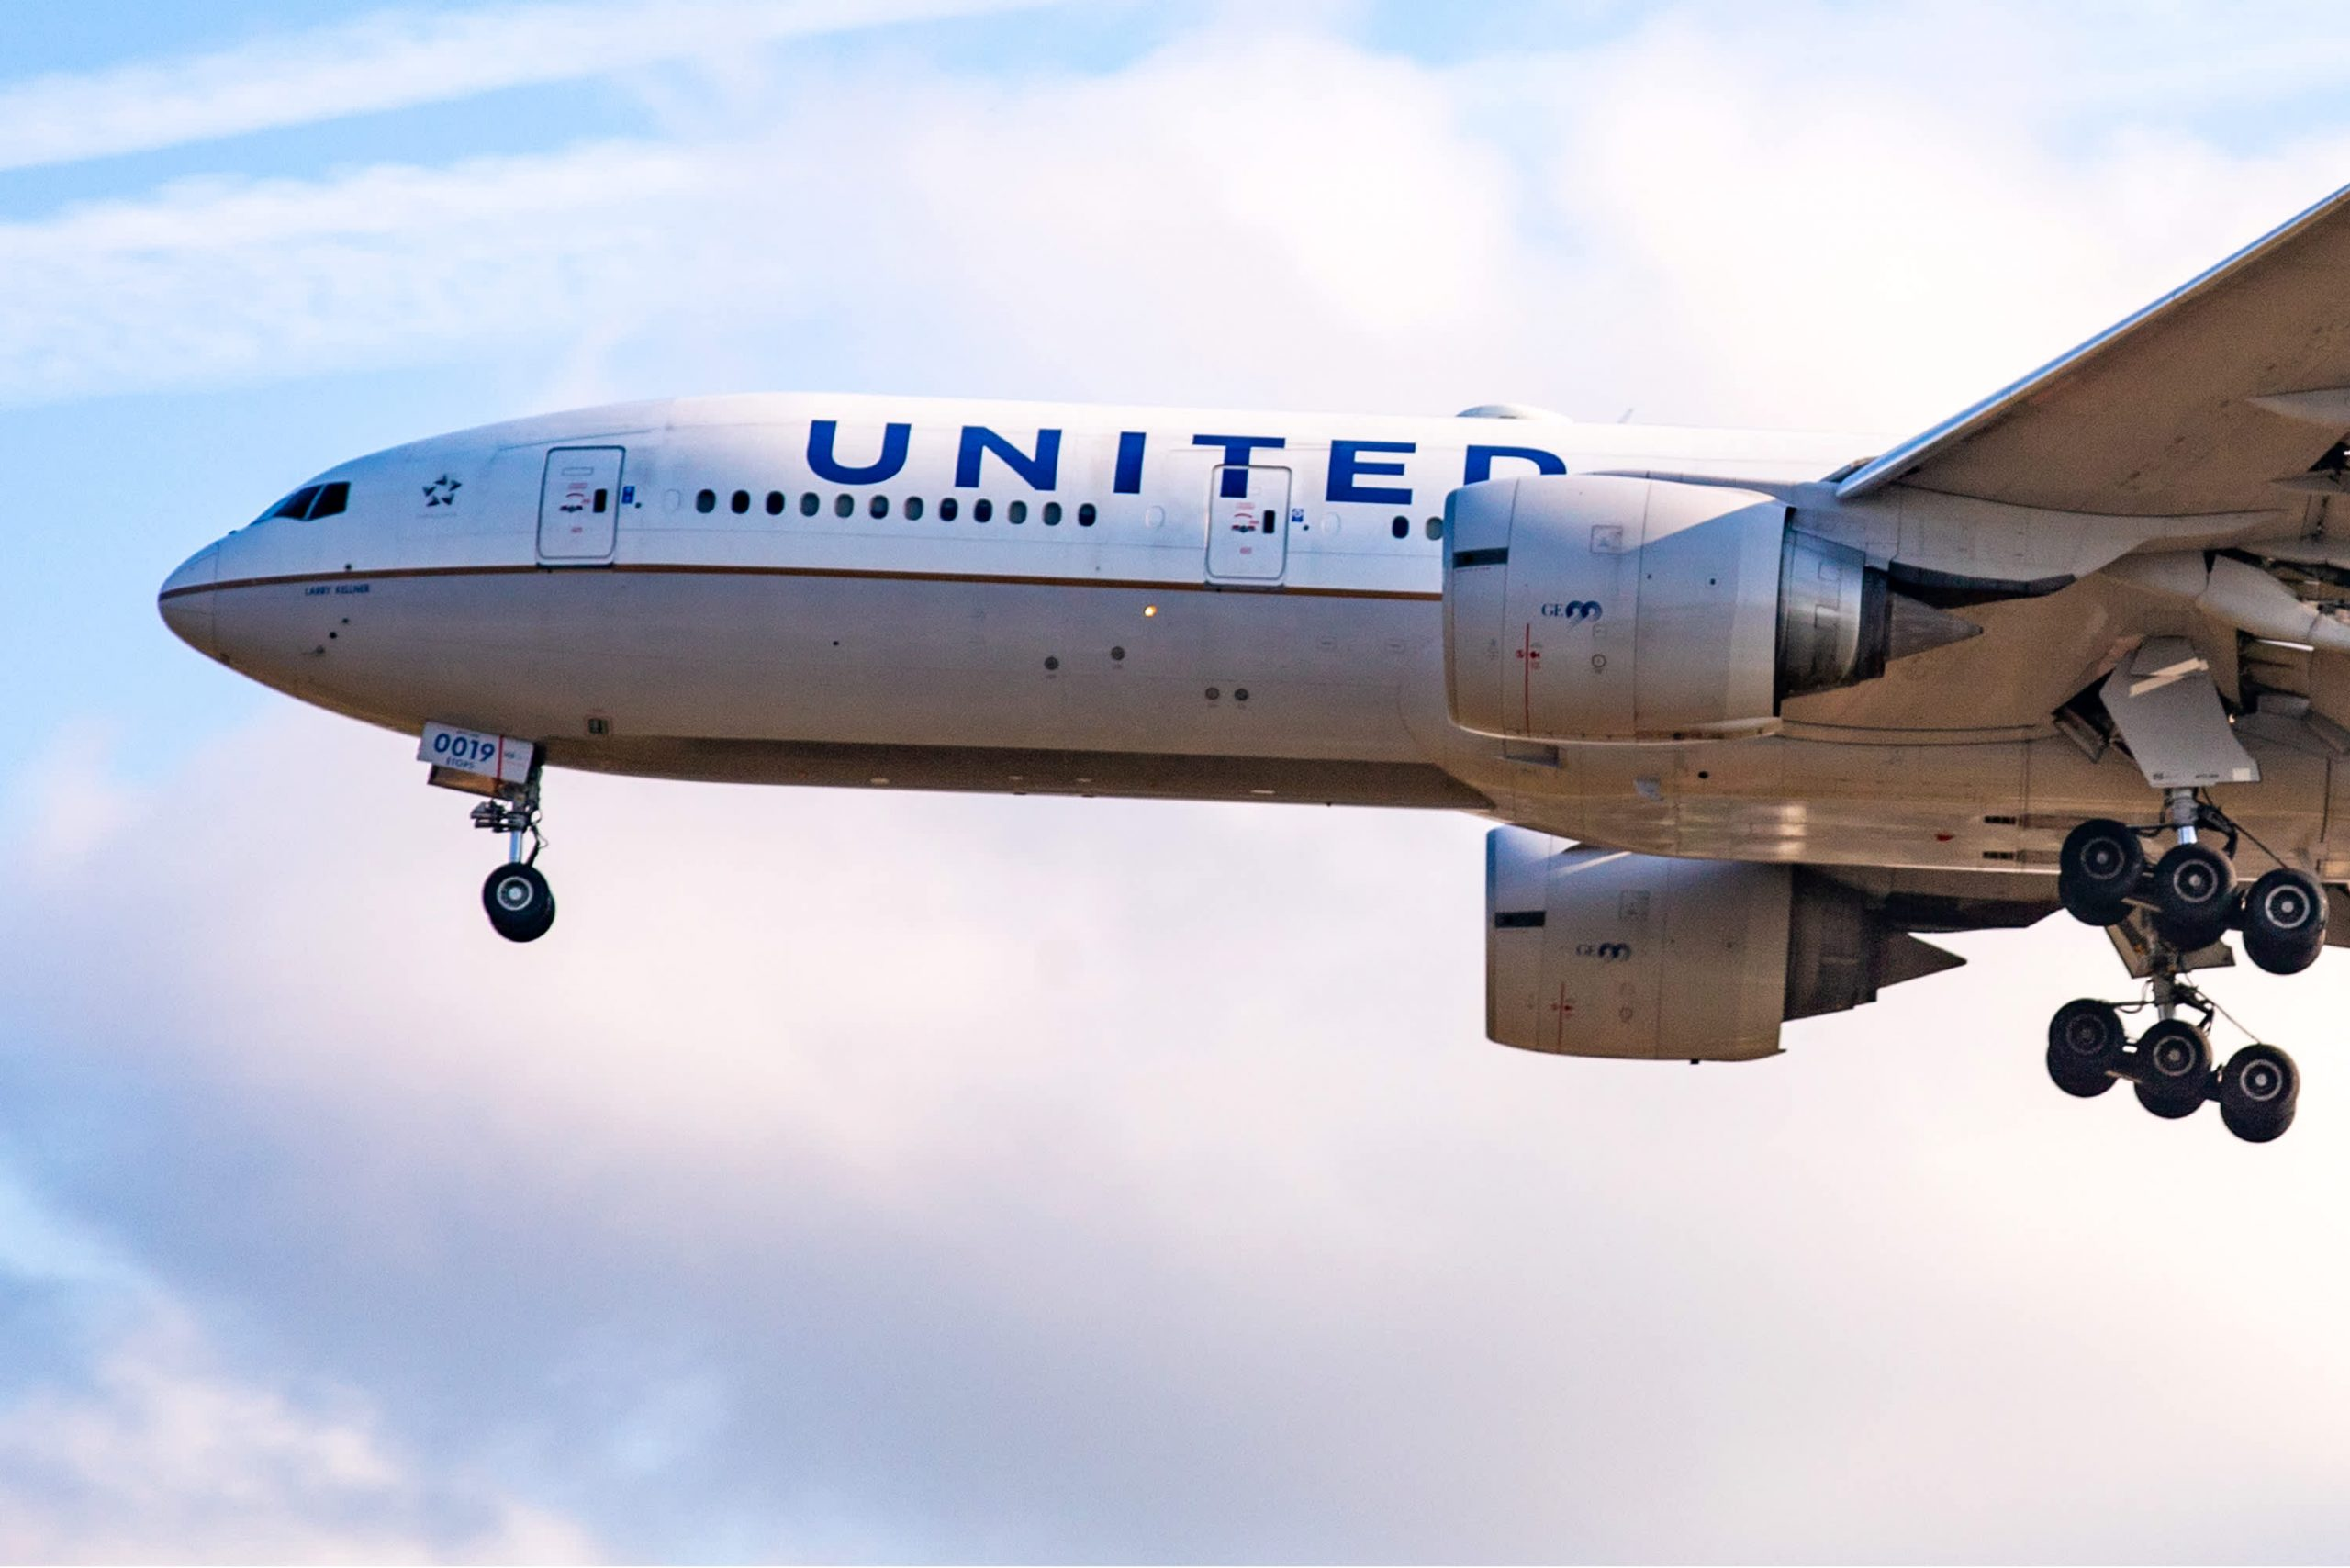 United Boeing 777 suffers engine failure after takeoff from Denver, debris found but no injuries